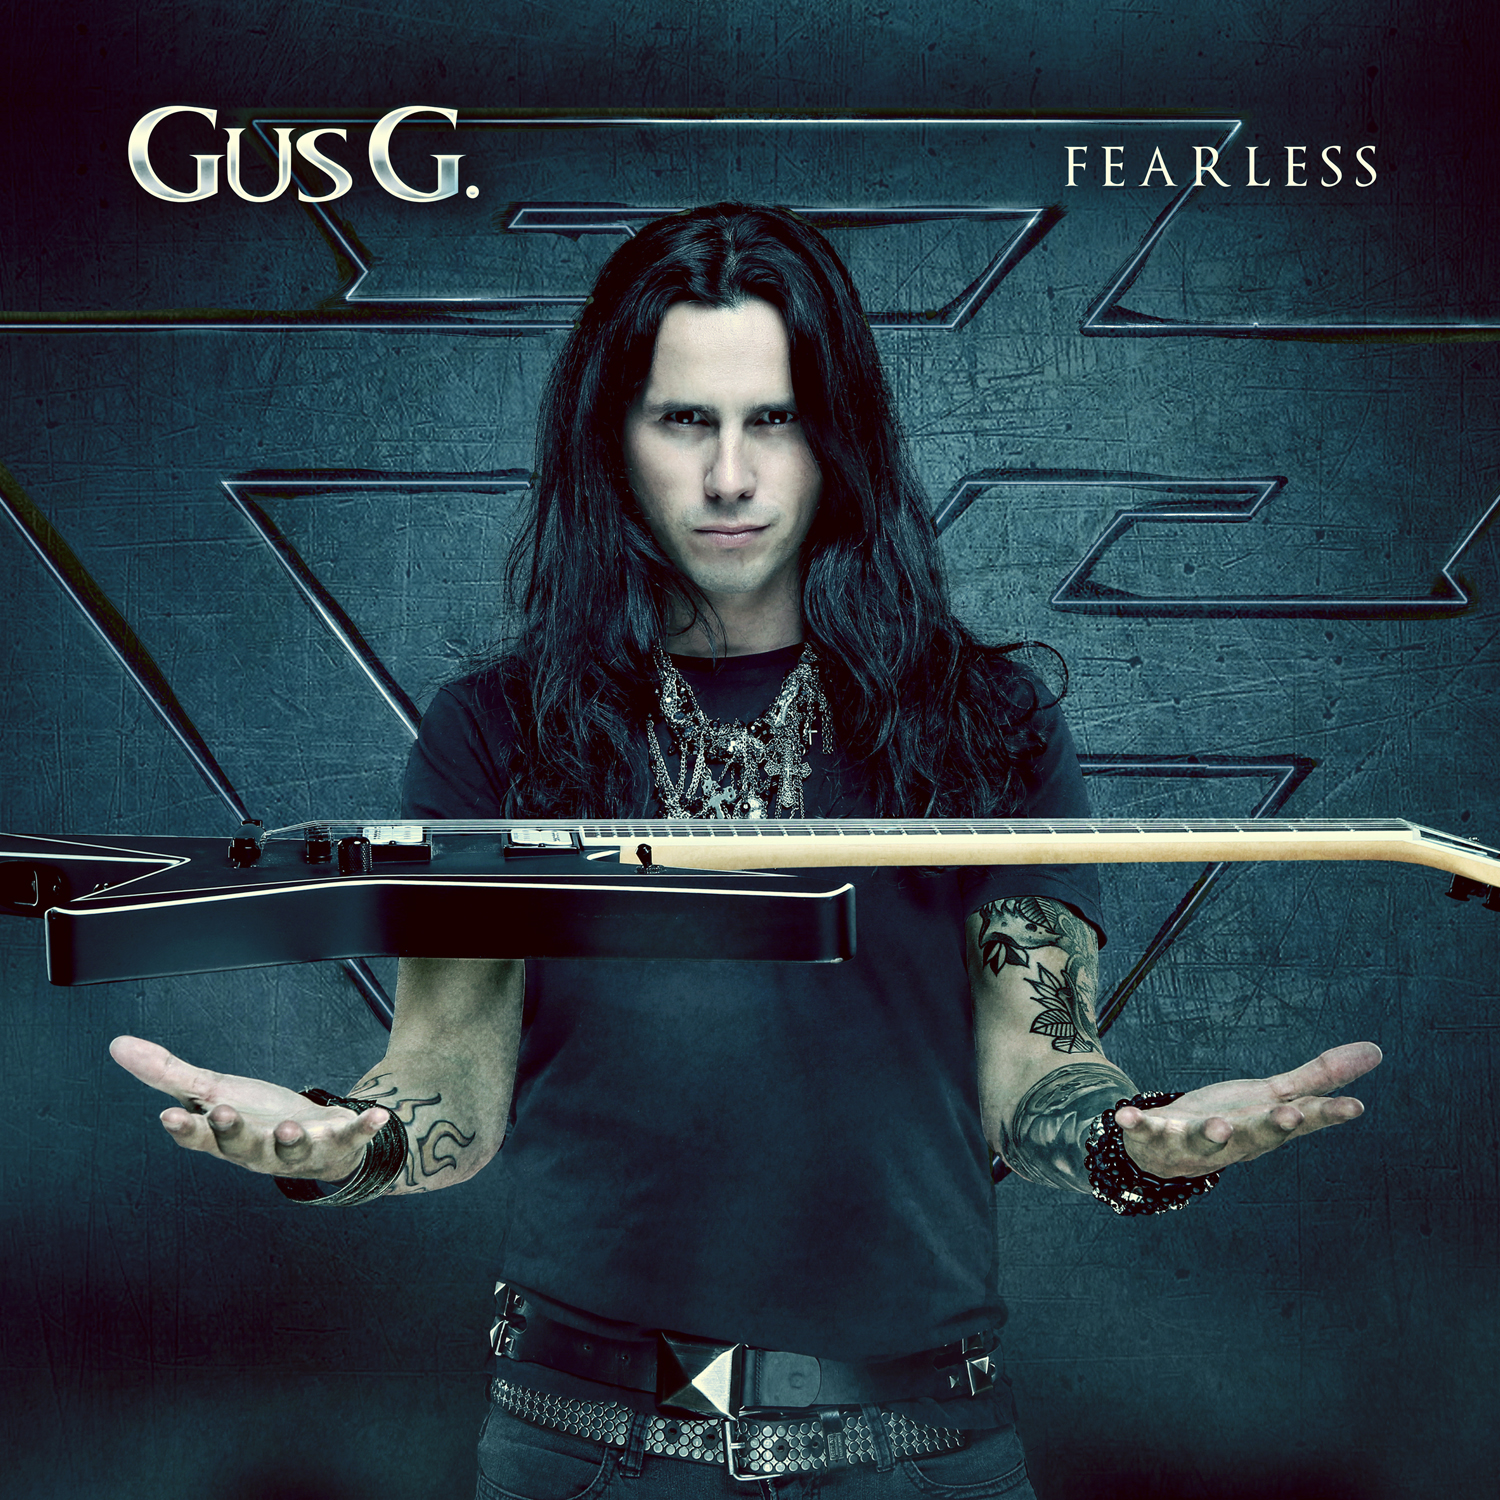 Live Fall Wallpaper For Pc Gus G Fearless Album Review Leon Tk